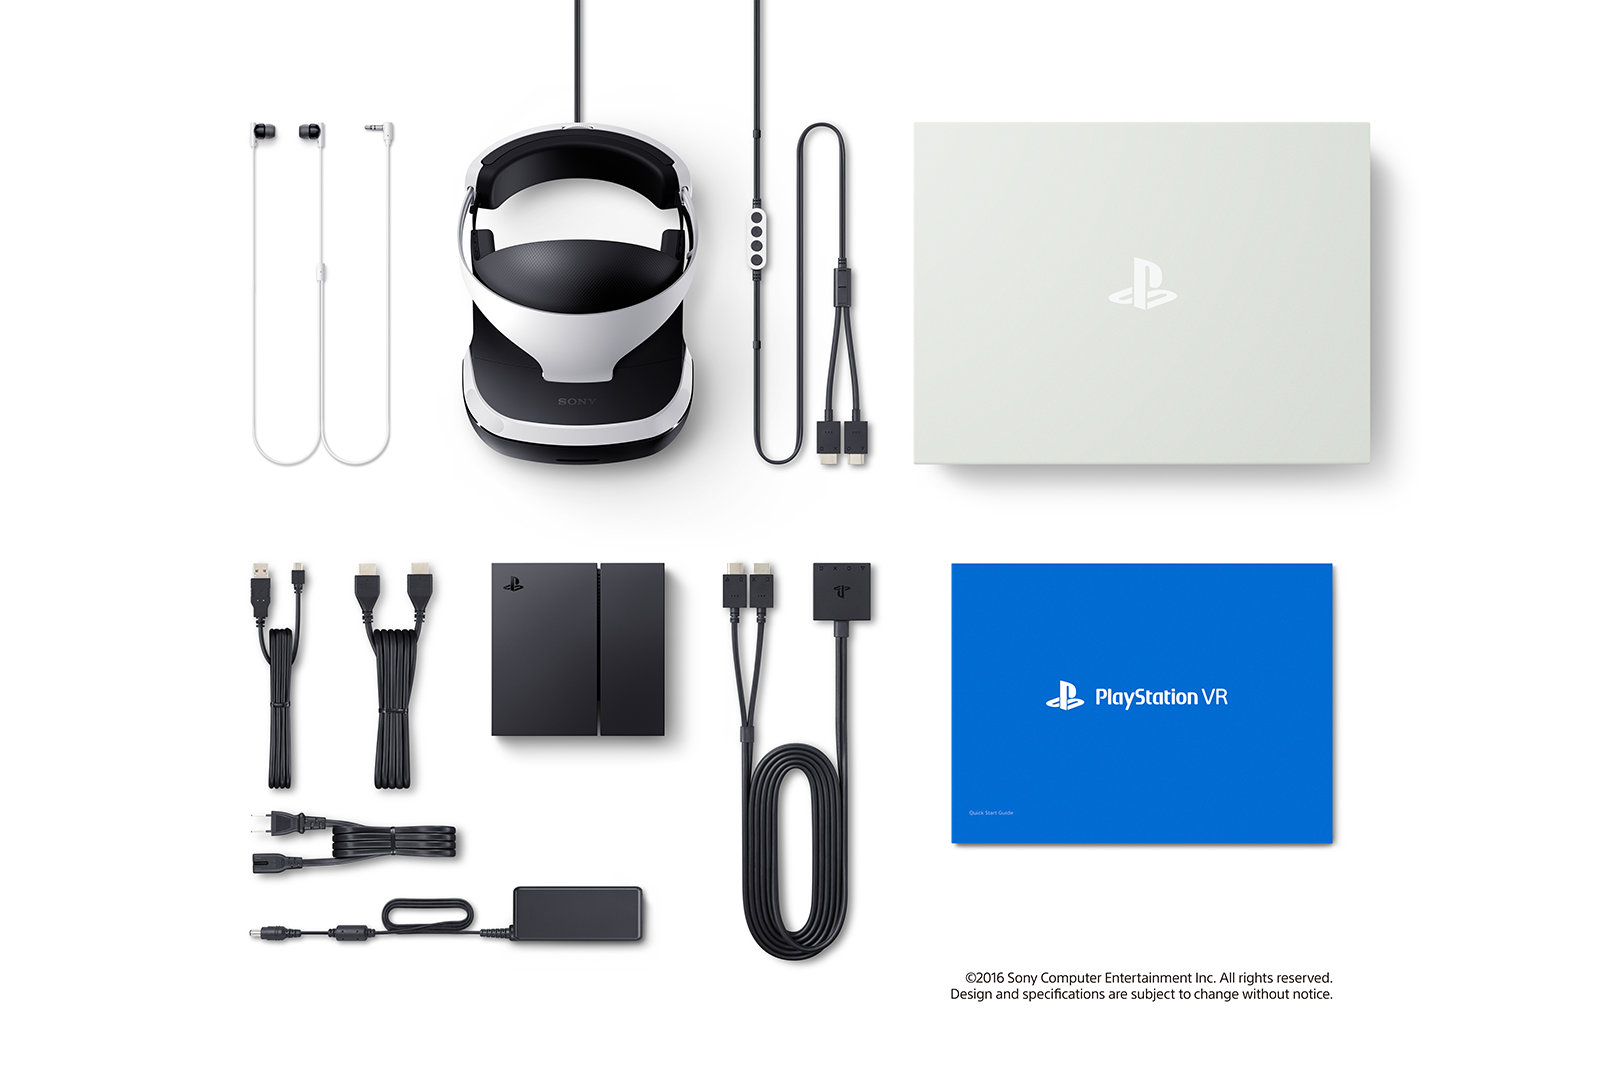 Playstation VR box contents